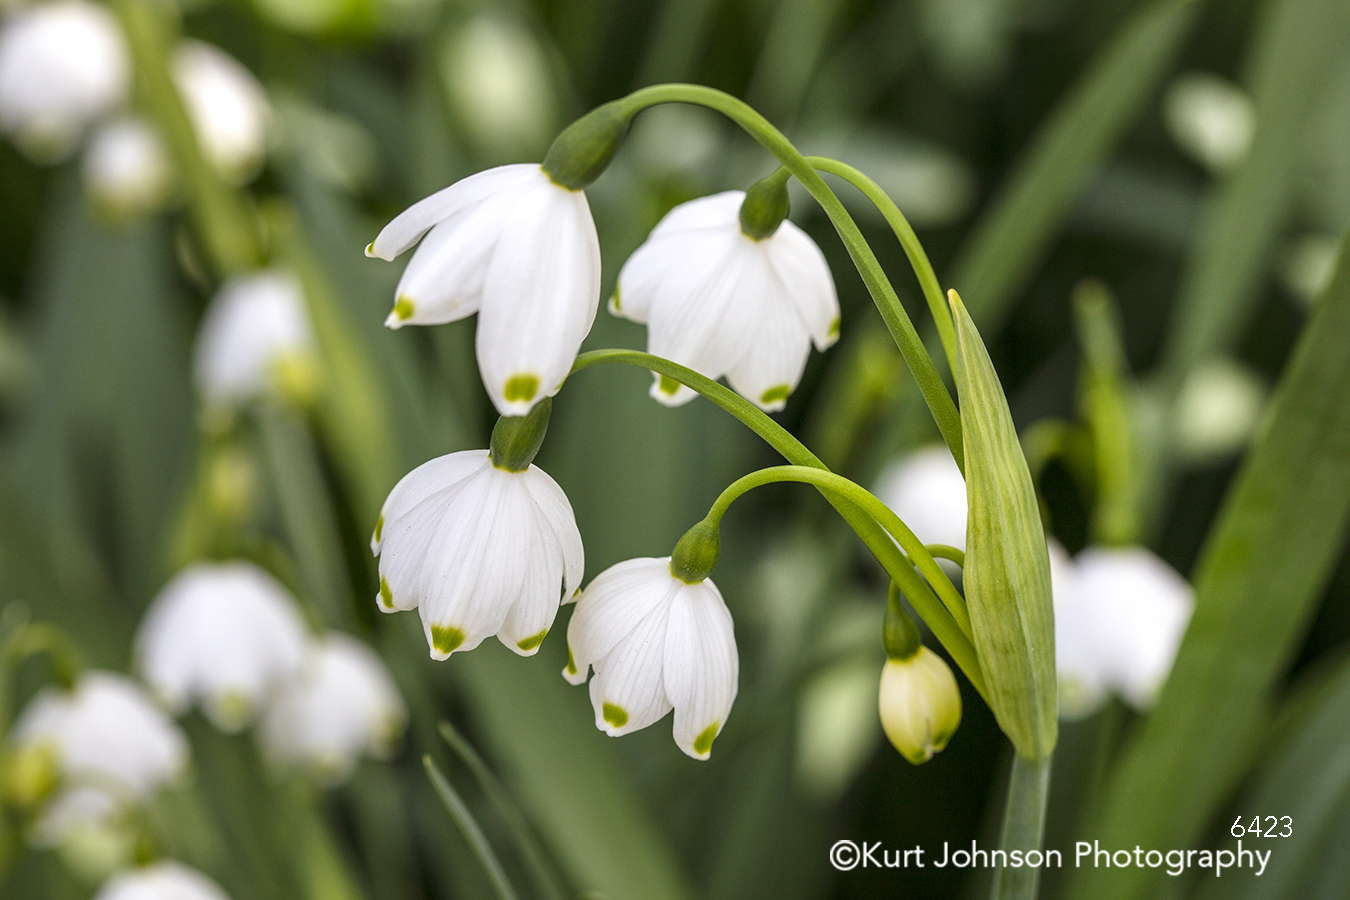 white spring summer flower lily of the valley green grass close up detail macro